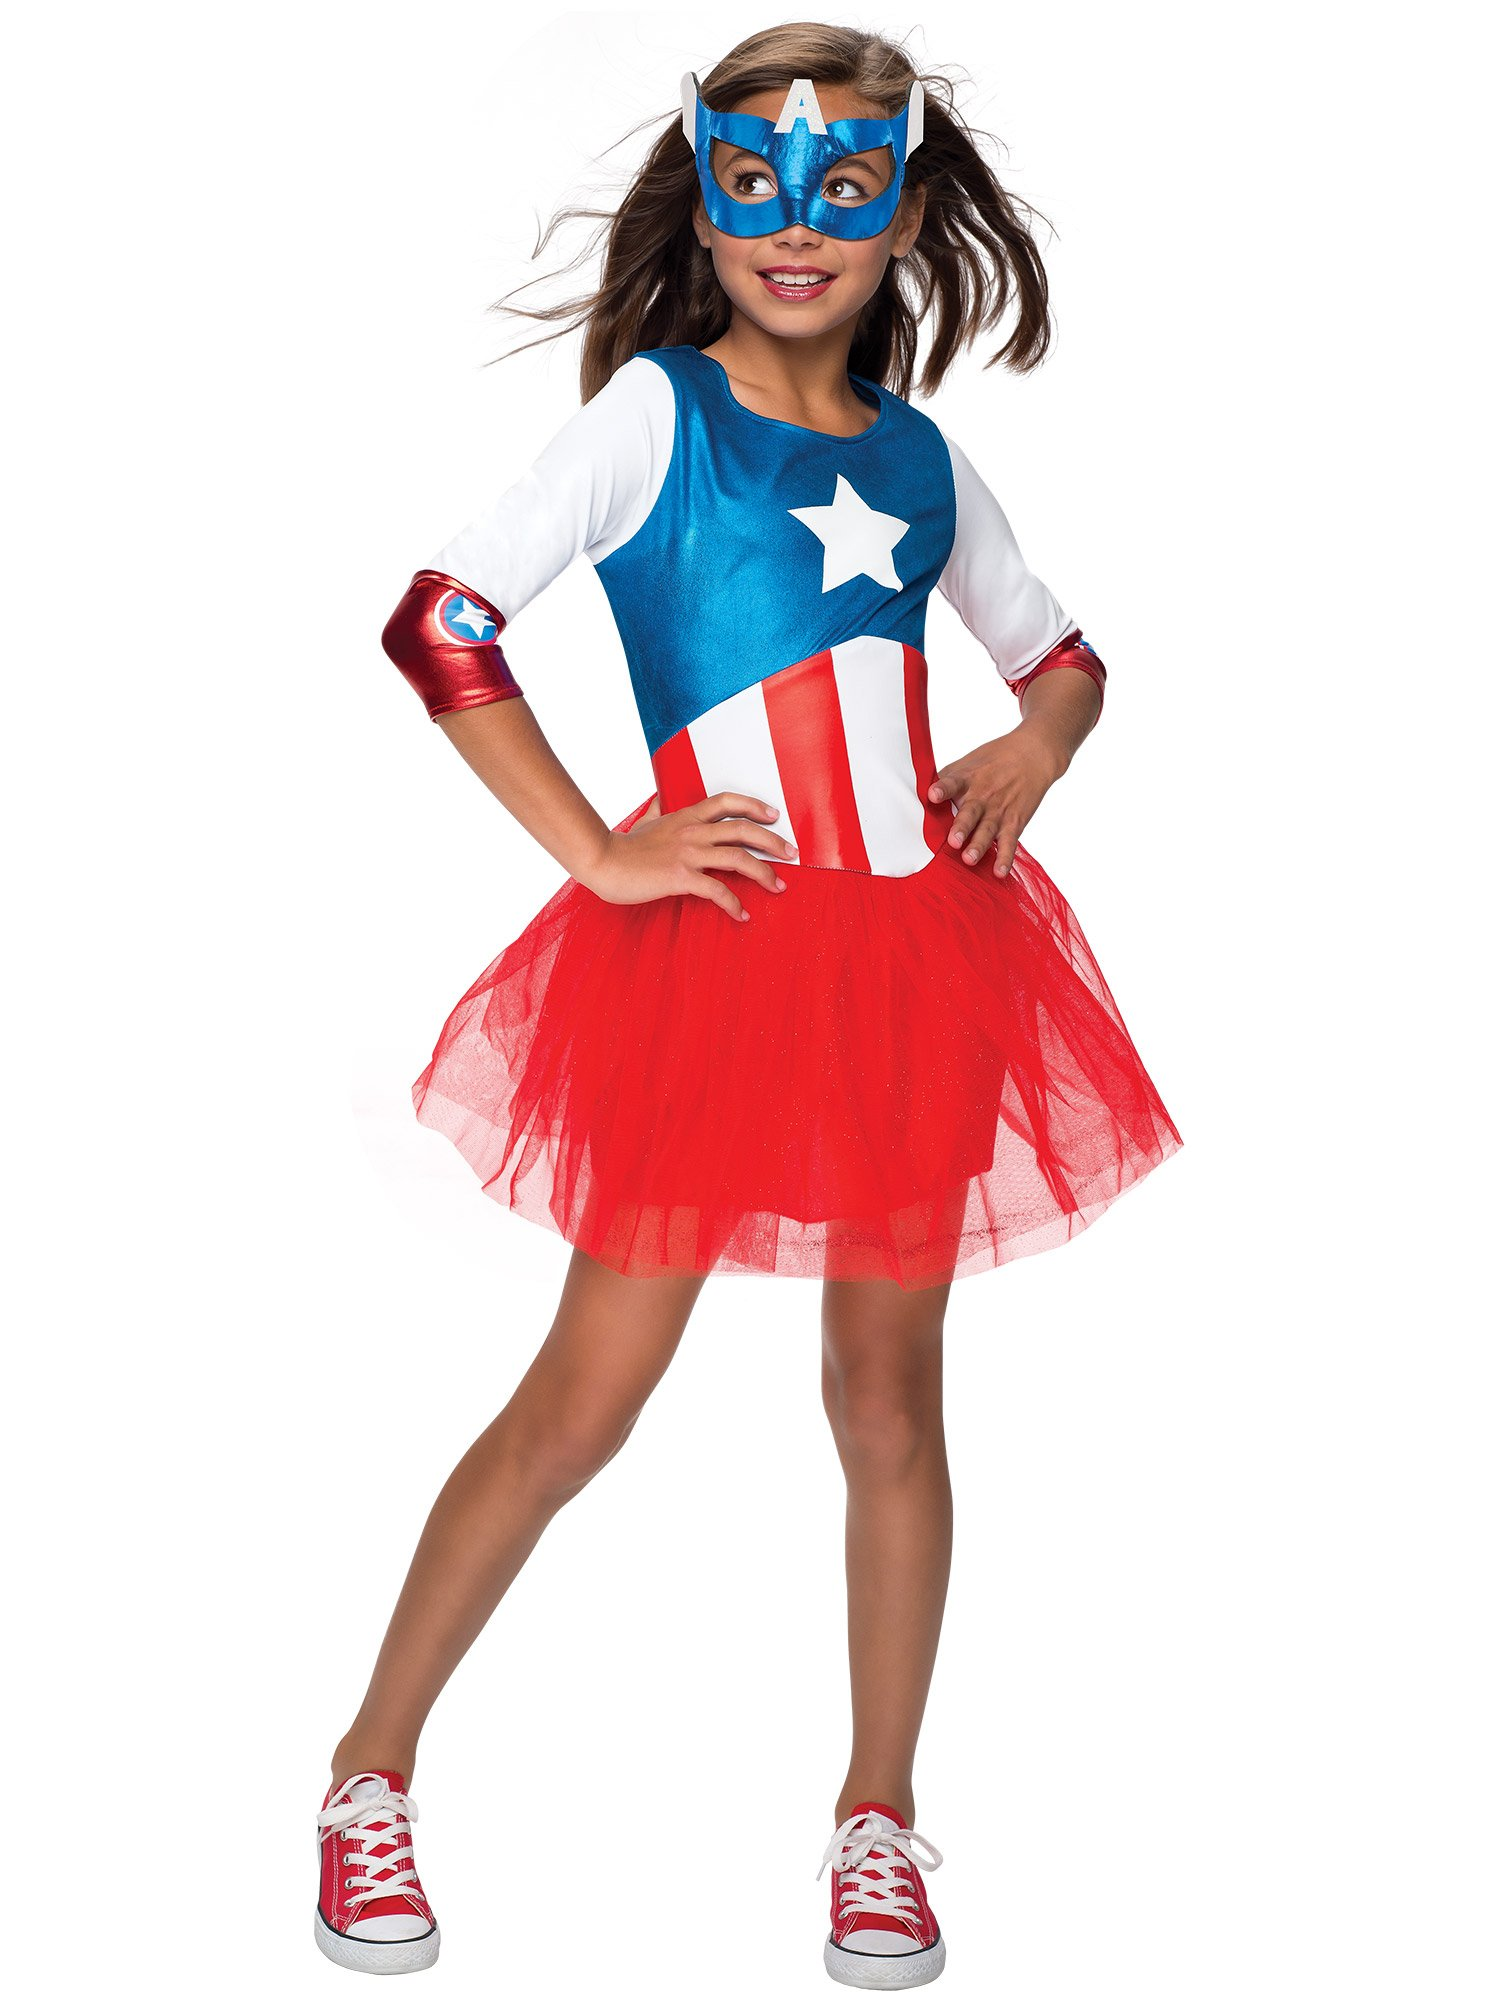 - 7177bX9P0XL - Rubie's Marvel Classic Child's American Dream Metallic Costume